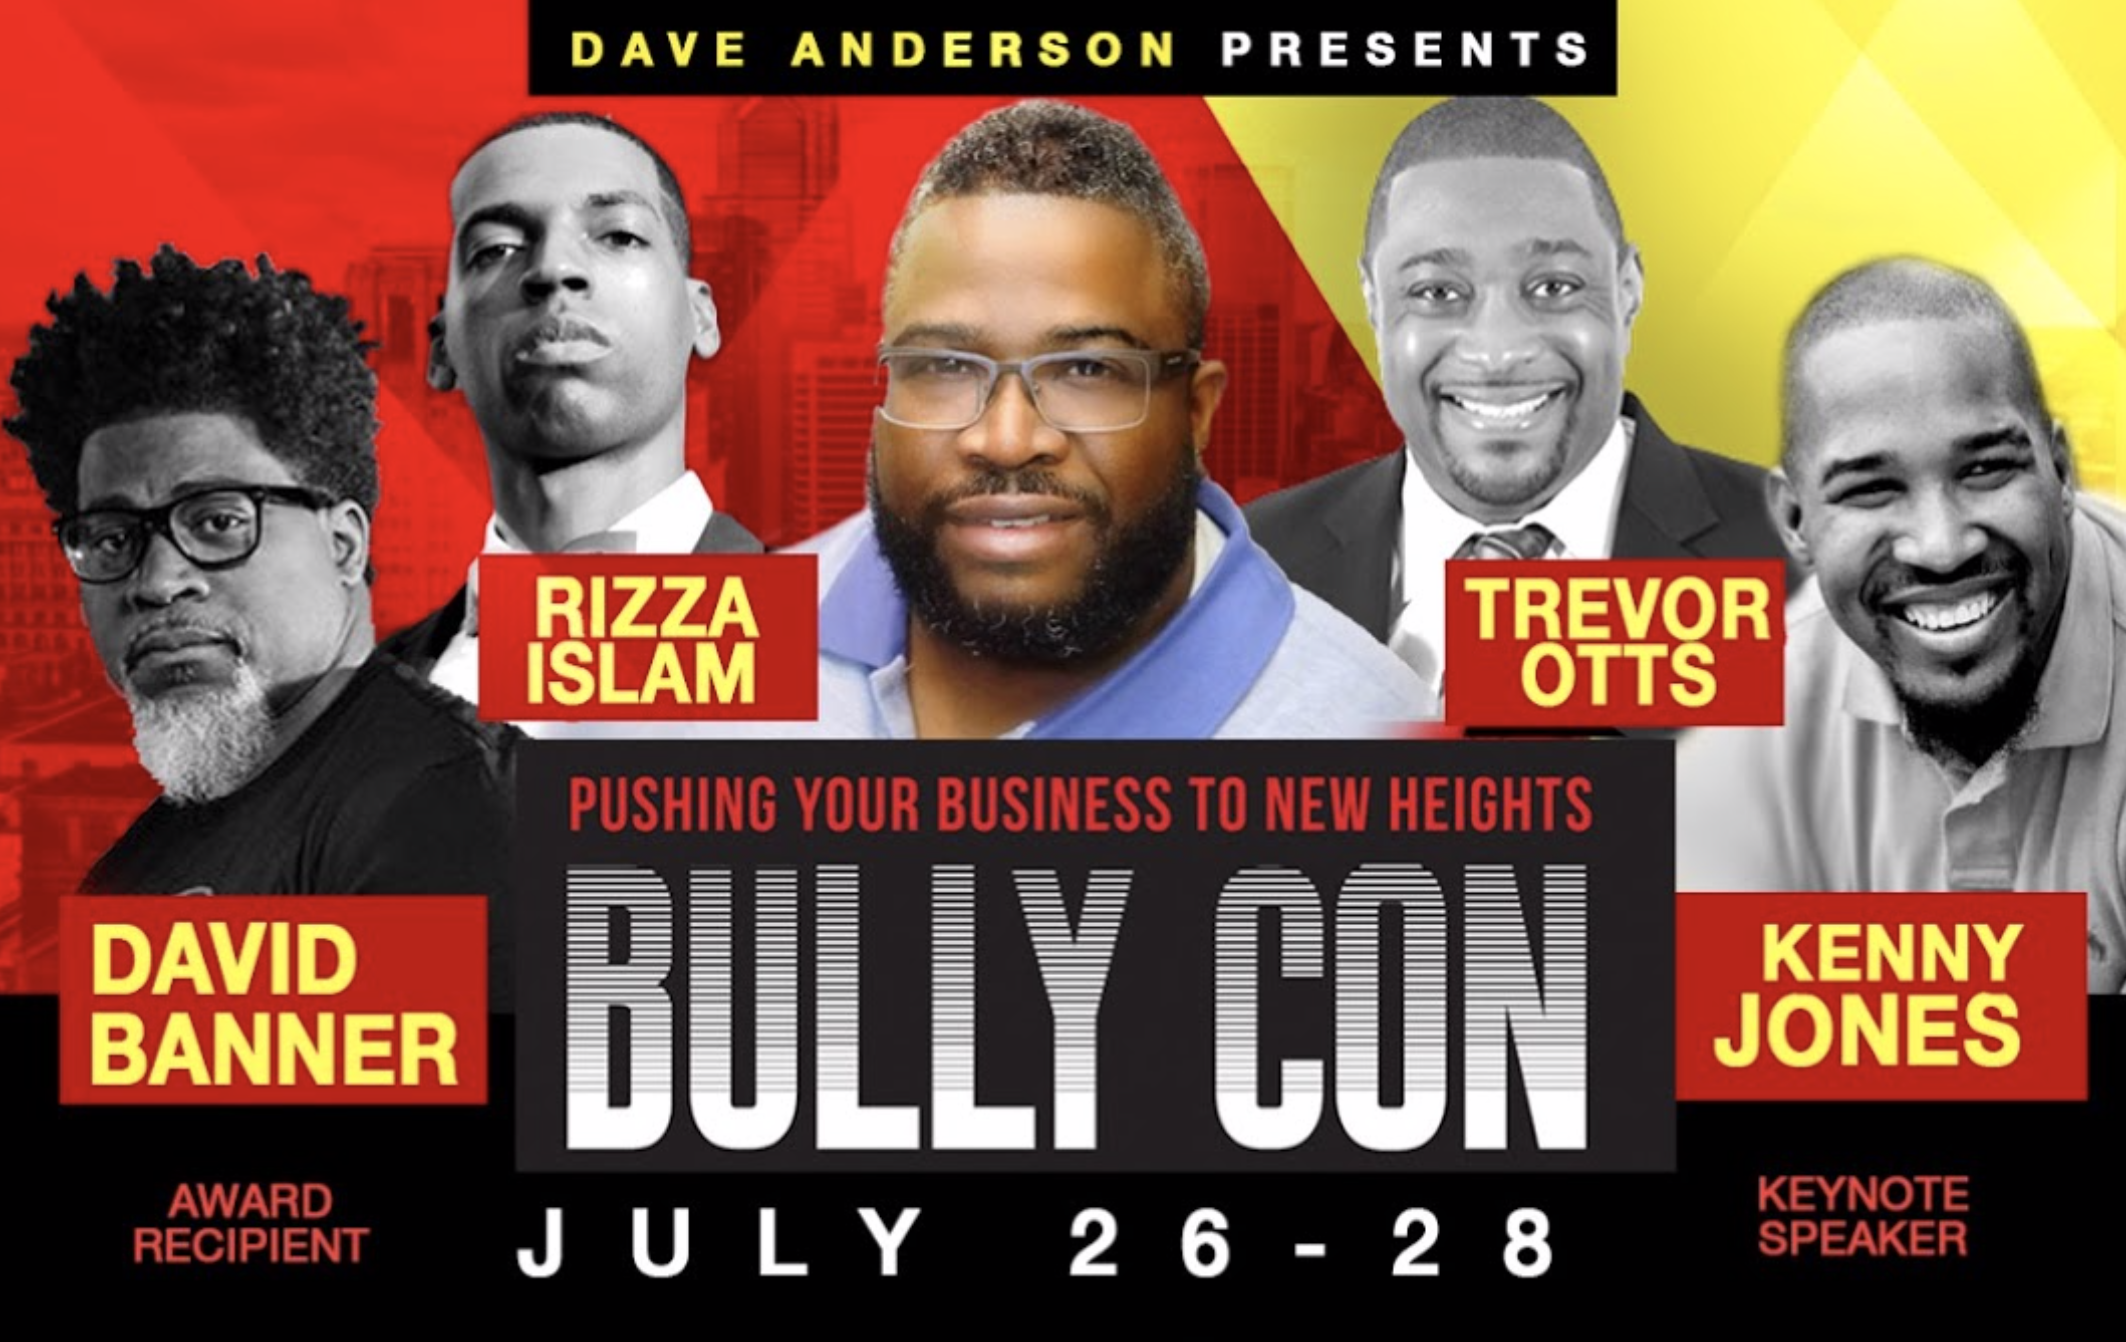 BullyCon Assembles Rizza Islam, David Banner And Business Owners For Conference